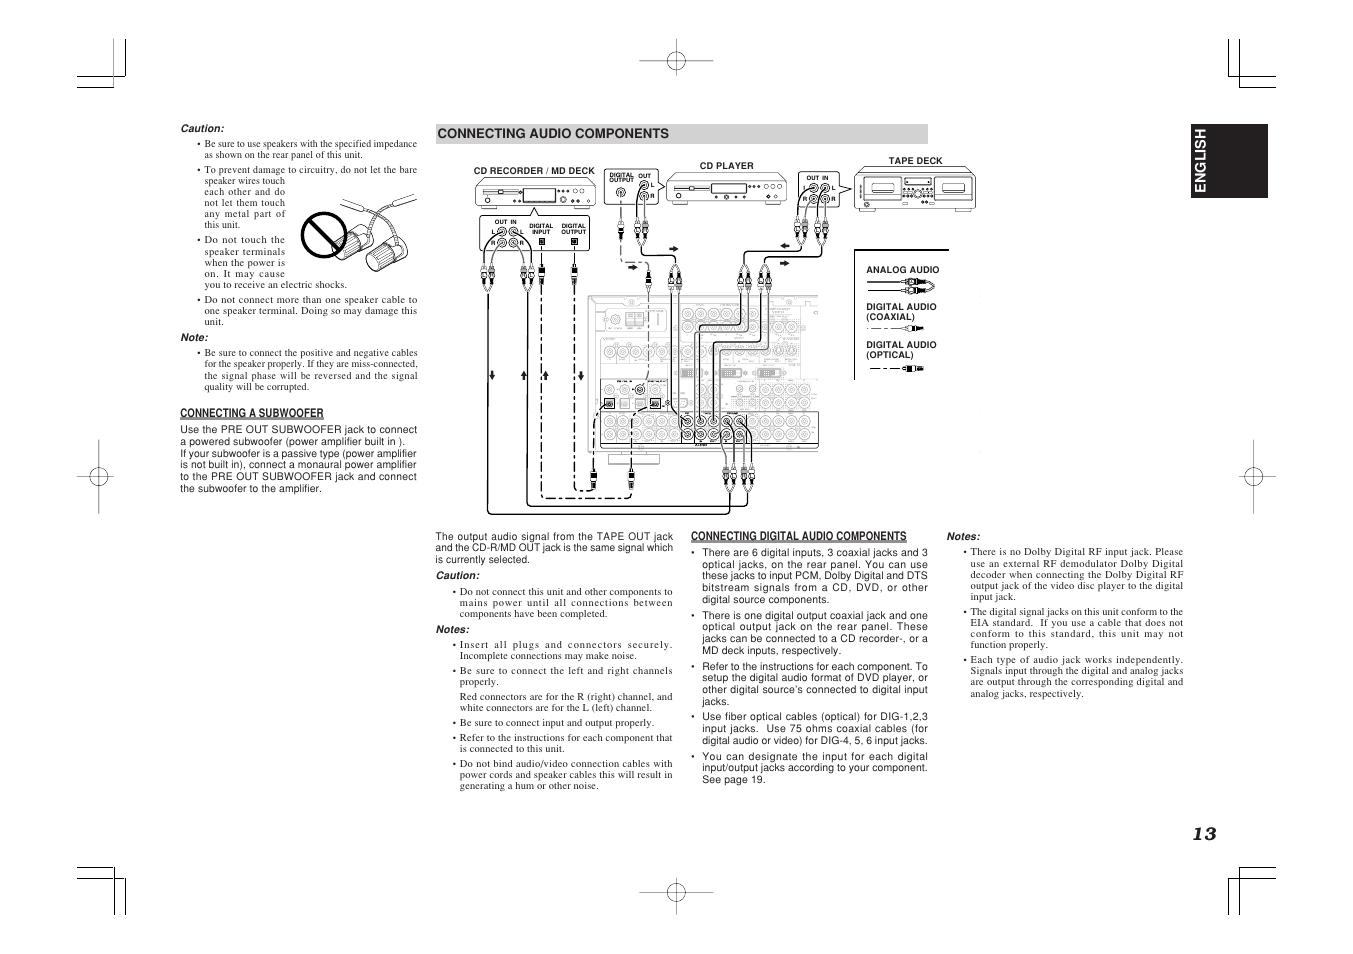 marantz sr7500 user manual page 17 58 original mode also for rh manualsdir com Marantz 7500 Manual eBay Marantz SR7500